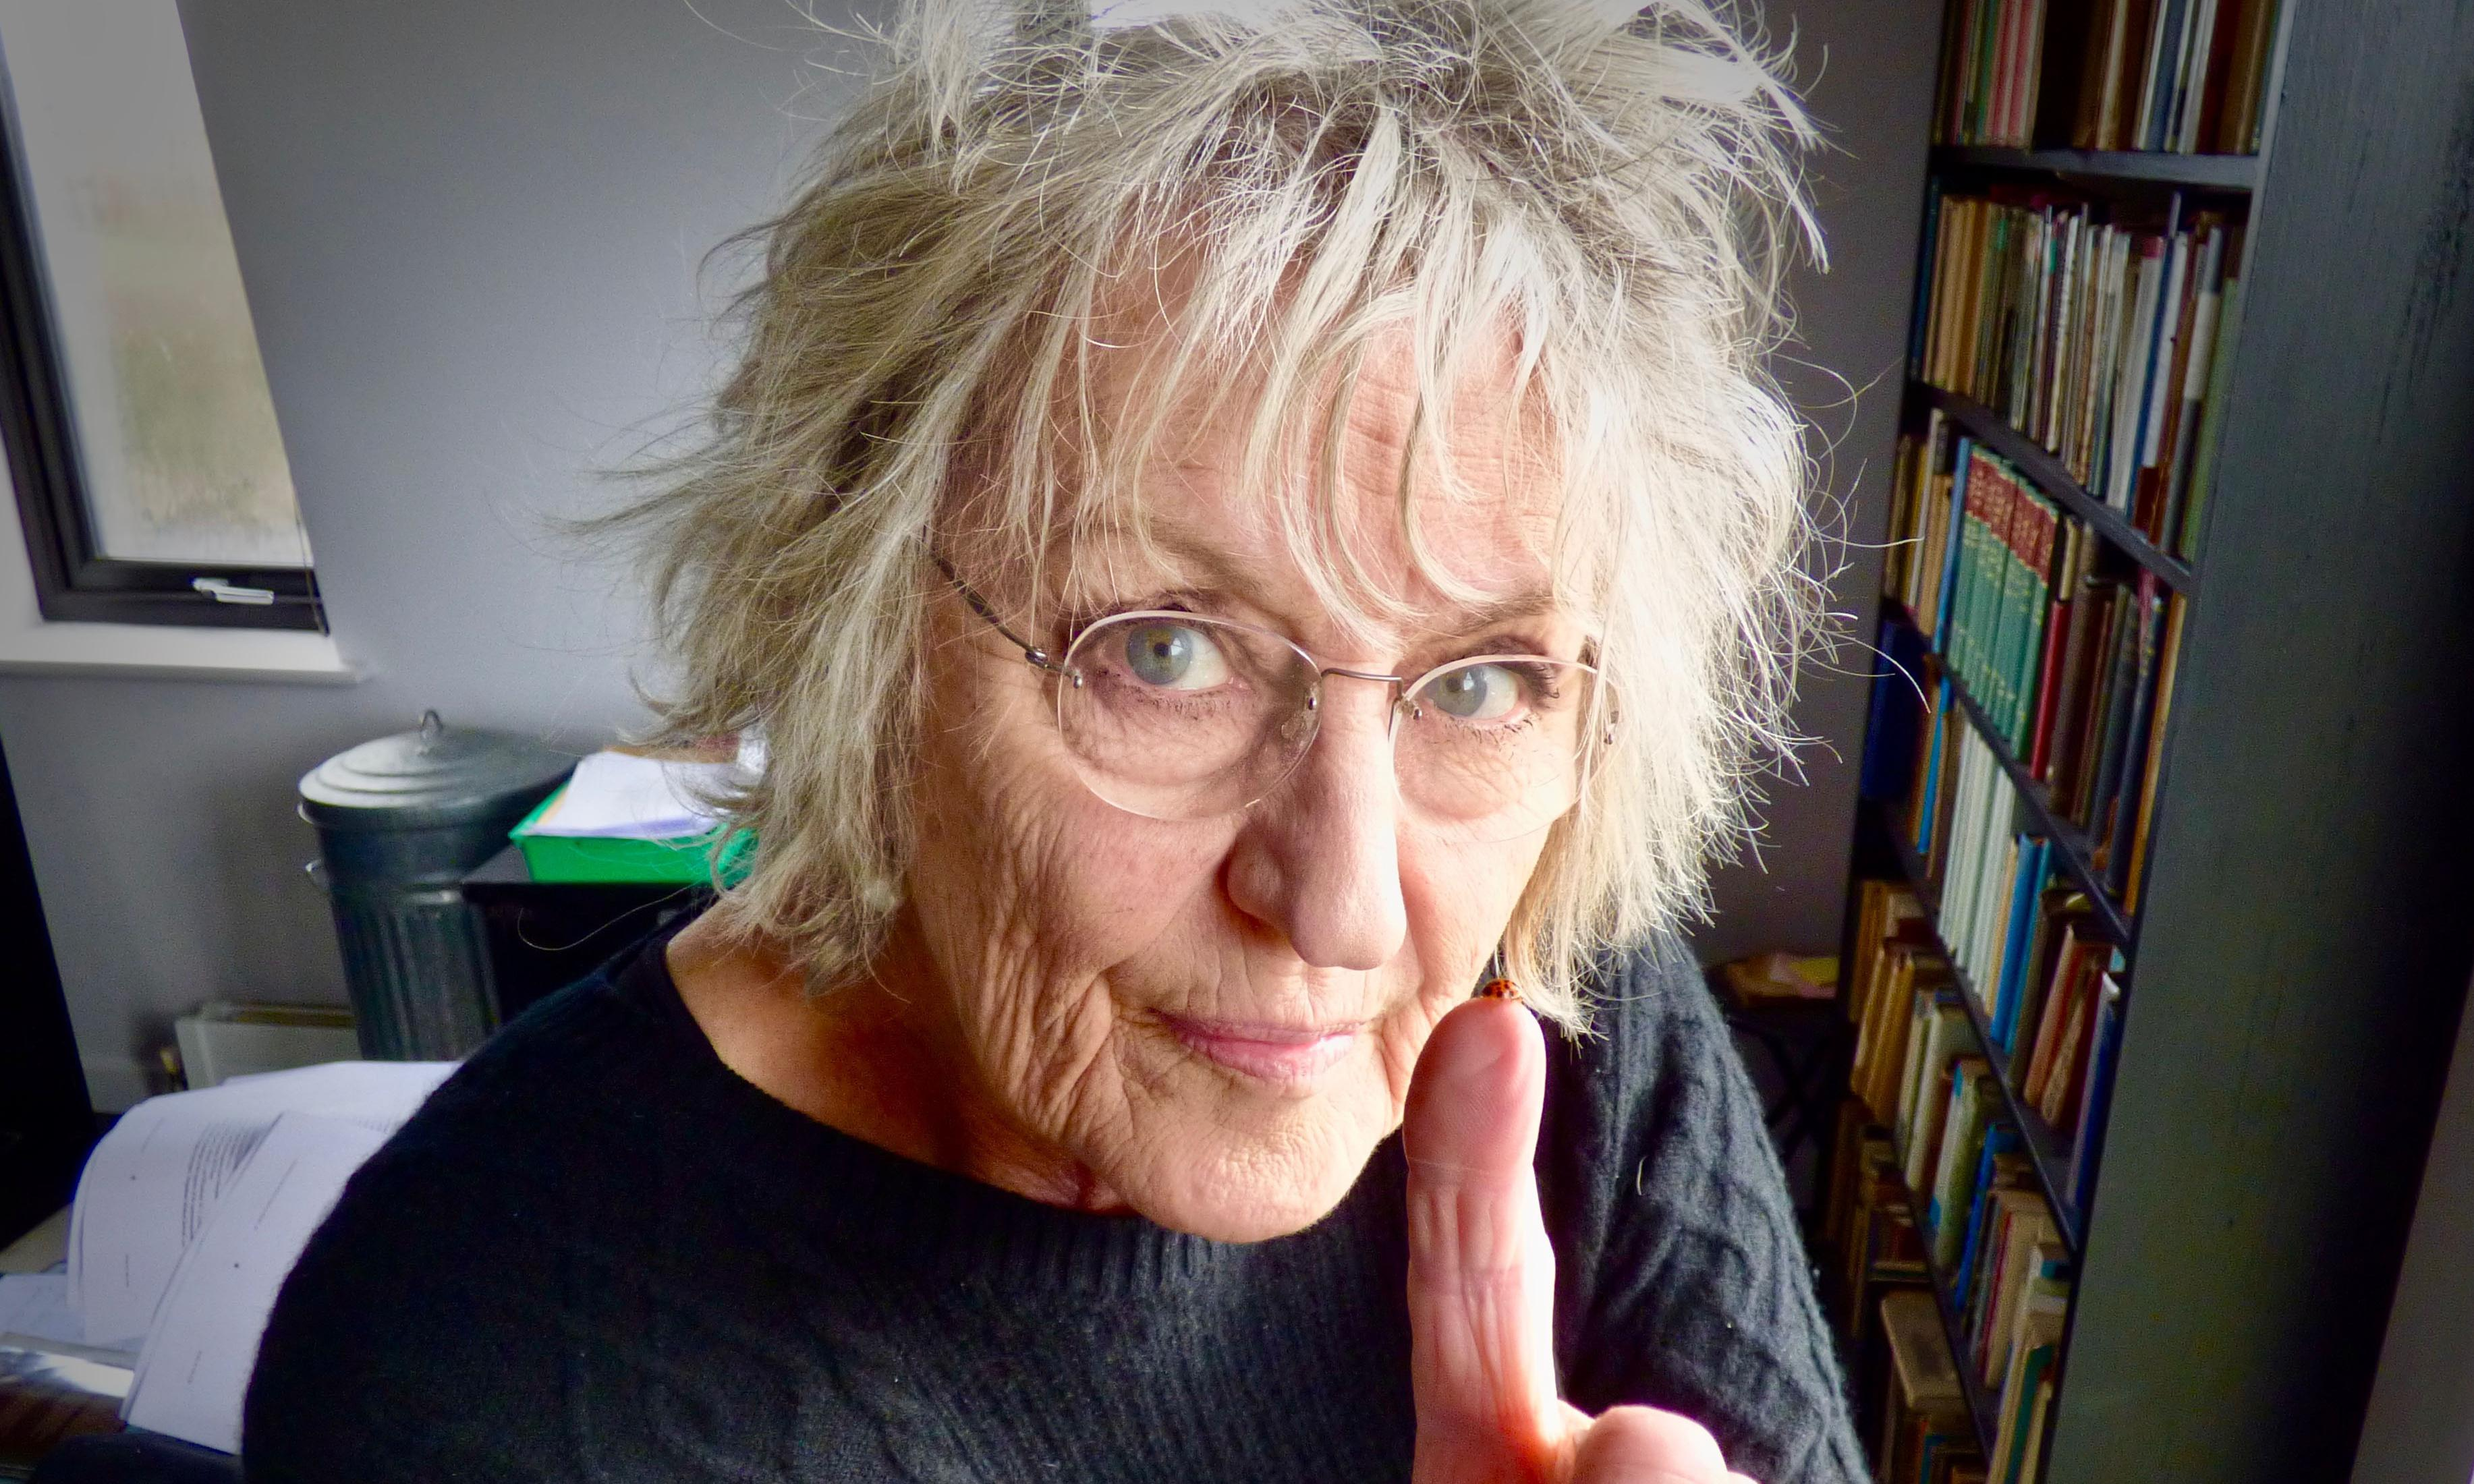 Germaine Greer's attack on Meghan Markle – so predictable, so old hat, so wrong